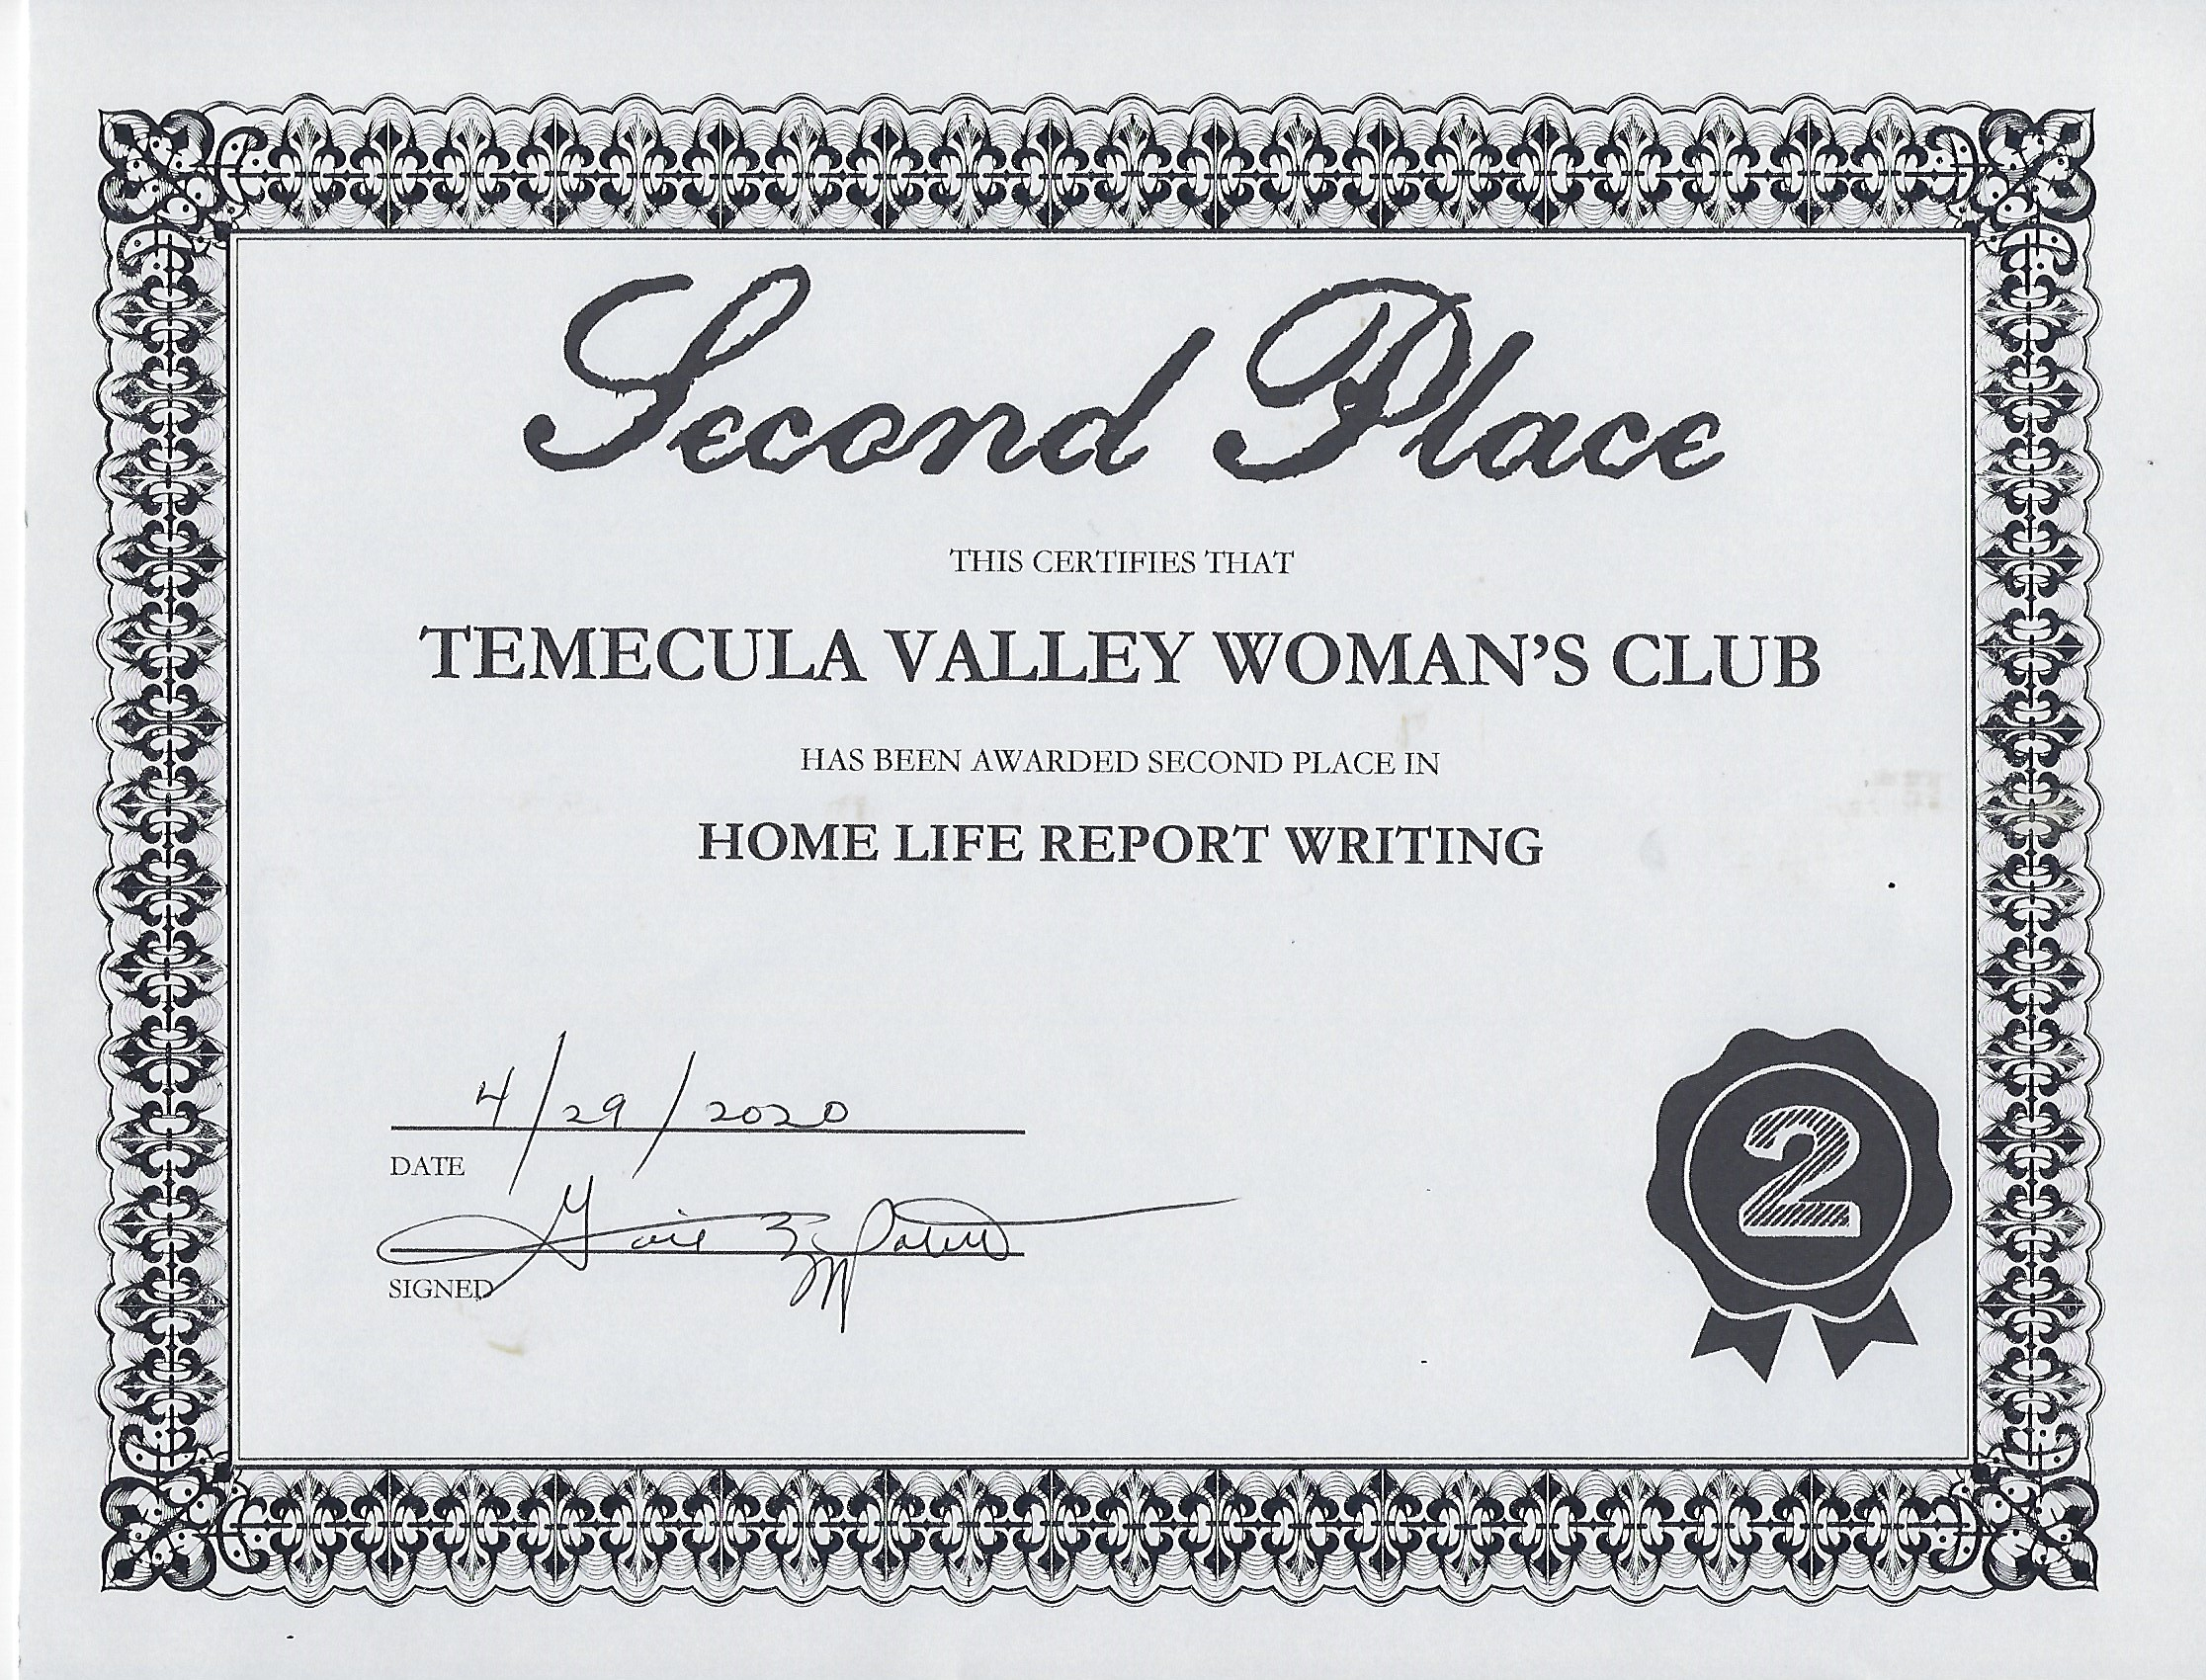 Home Life Report Writing Award 2nd Place